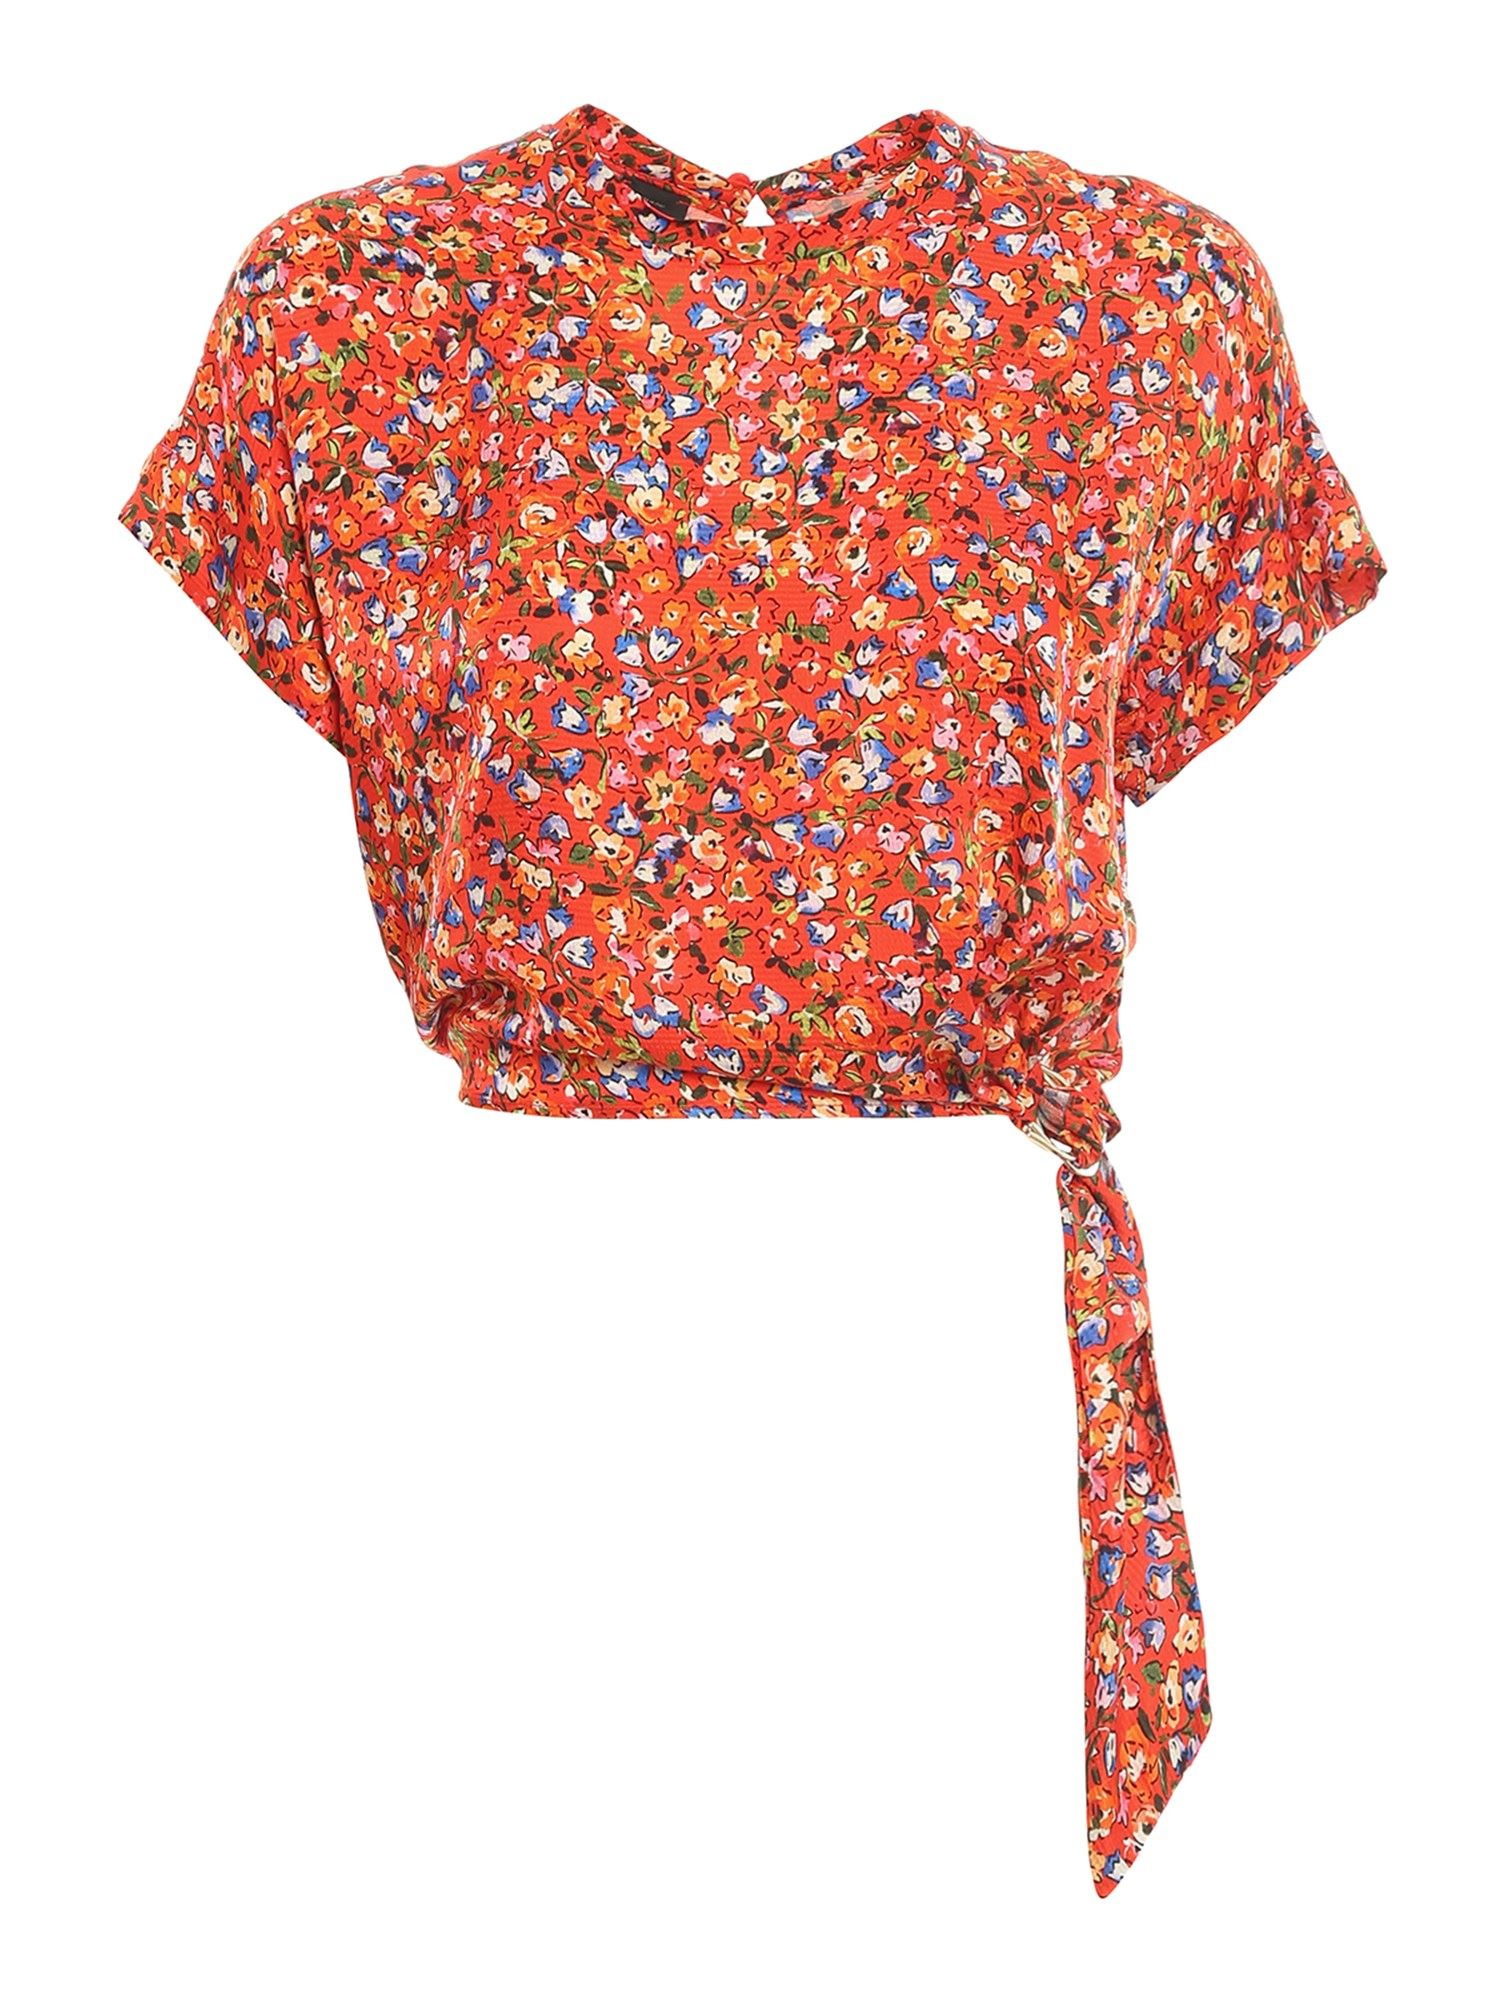 Pinko Blouses PINKO CANORO BLOUSE IN RED